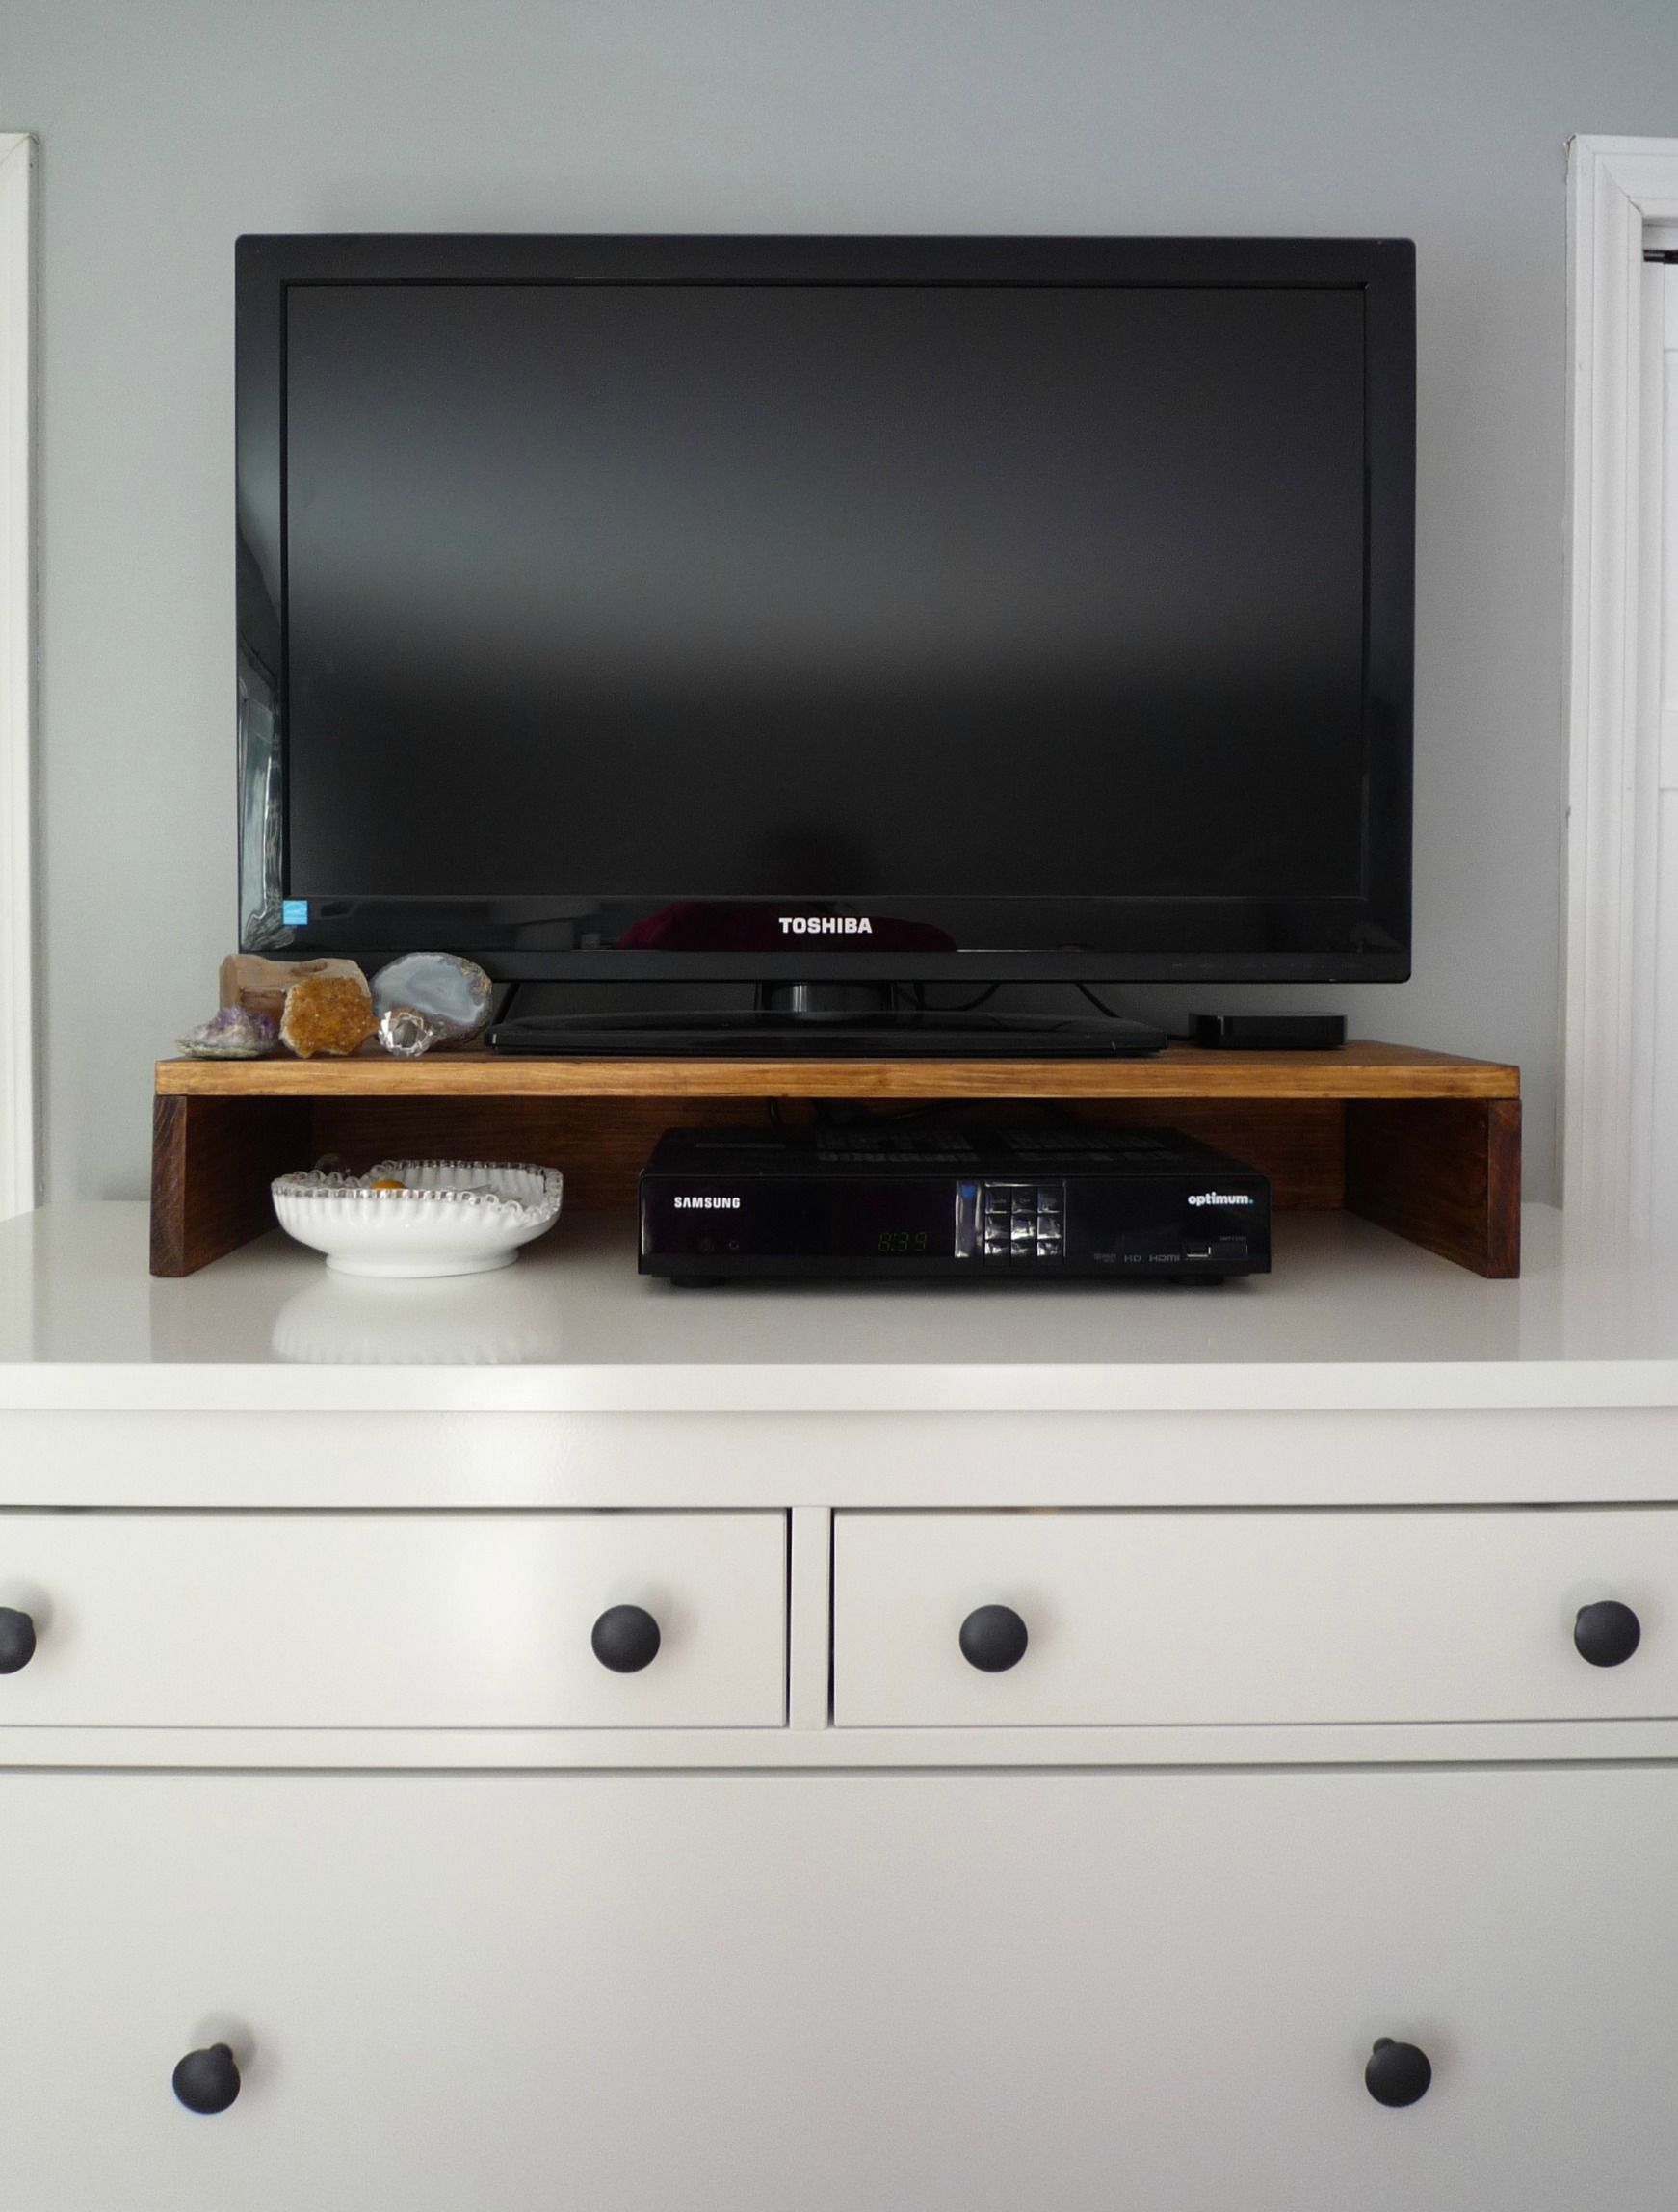 Make A TV Stand For The Top Of Your Dresser Or Console To Hold Cable Boxes